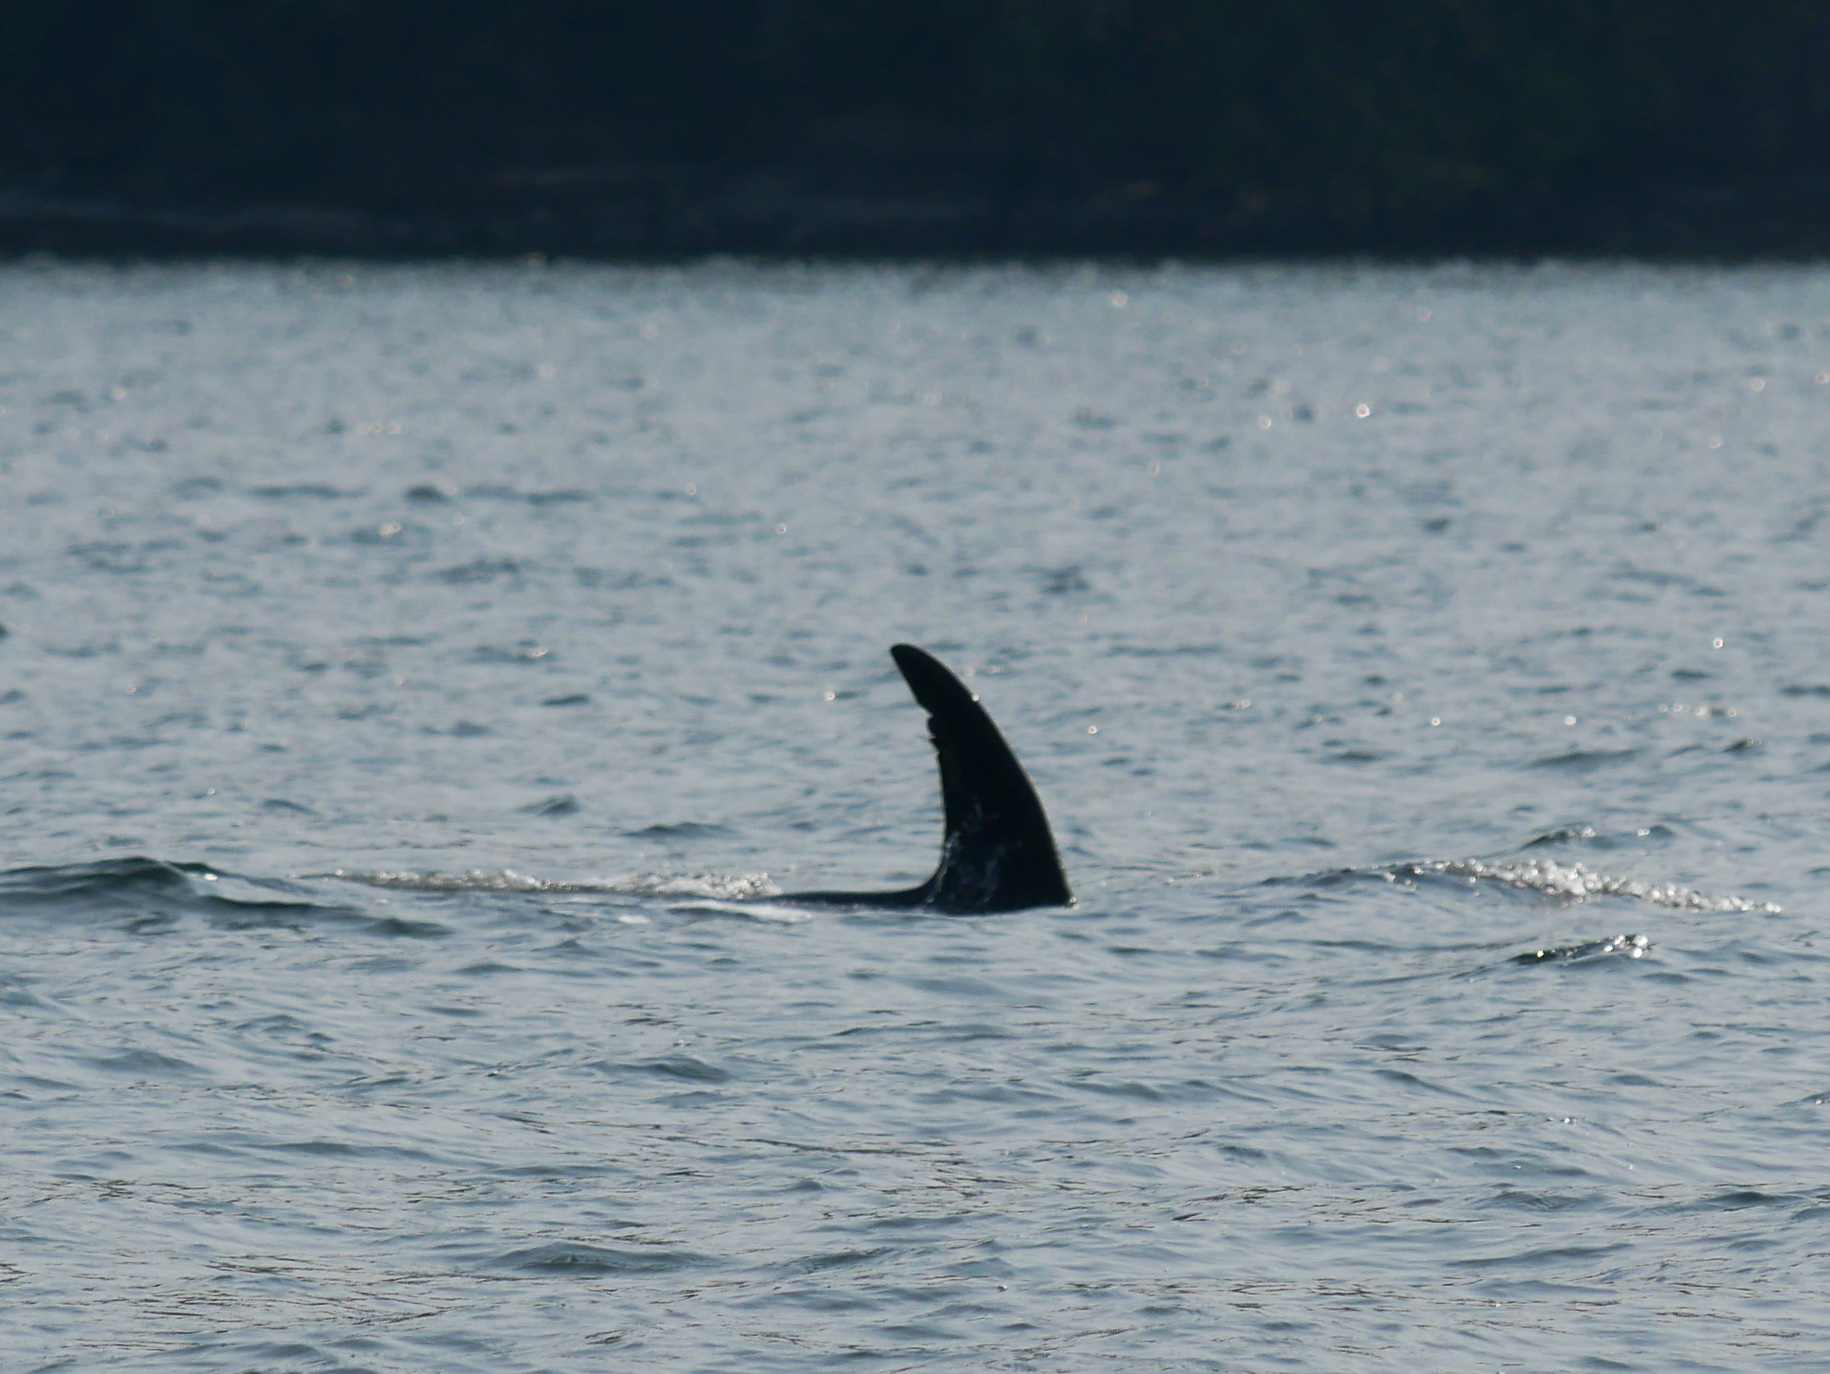 T99B's dorsal fin with the nick. Photo by Val Watson.